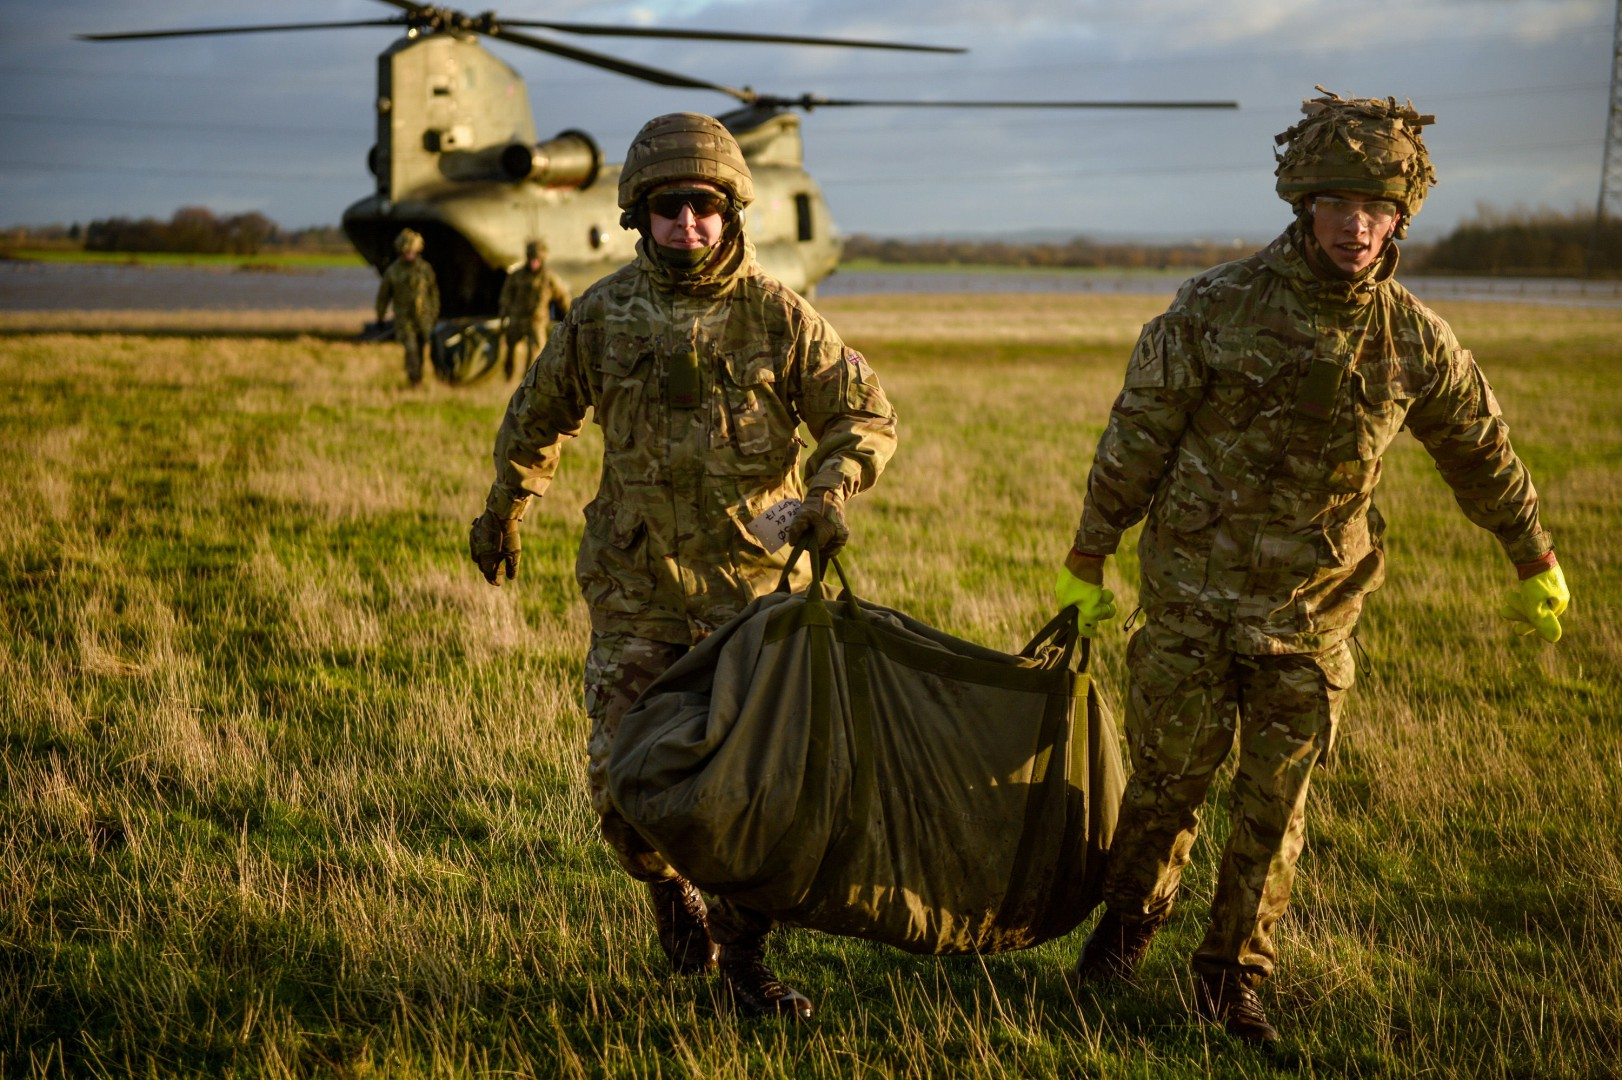 MoD handout photo of British Army soldiers and an RAF air crew working together to airlift more sandbags into a river breach just outside Croston, Lancashire, after it collapsed as Storm Frank battered parts of the UK yesterday. PRESS ASSOCIATION Photo. Picture date: Thursday December 31, 2015. See PA story WEATHER Floods. Photo credit should read: Cpl Jamie Dudding (ARMY)/MoD Crown Copyright/PA Wire  NOTE TO EDITORS: This handout photo may only be used in for editorial reporting purposes for the contemporaneous illustration of events, things or the people in the image or facts mentioned in the caption. Reuse of the picture may require further permission from the copyright holder.  LaPresse Only italy Alluvione Regno Unito, continua l'intervento dell'esercito nelle zone colpite